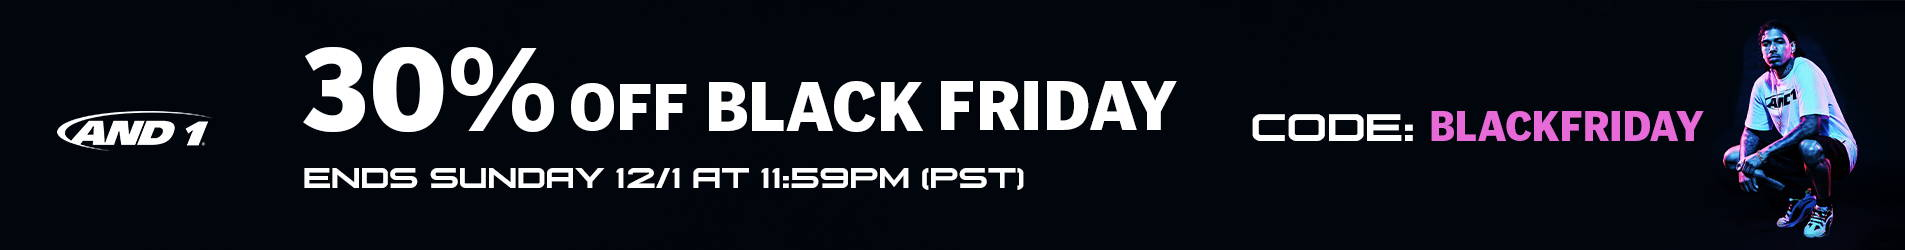 AND1 Black Friday, 30% off SITEWIDE. Perfect holiday gifts for family and friends at cheap prices: basketballs, basketball shoes, tai chis, shorts, shirts, jerseys, sneakers, basketballs, beanies, hoodies, joggers and more.